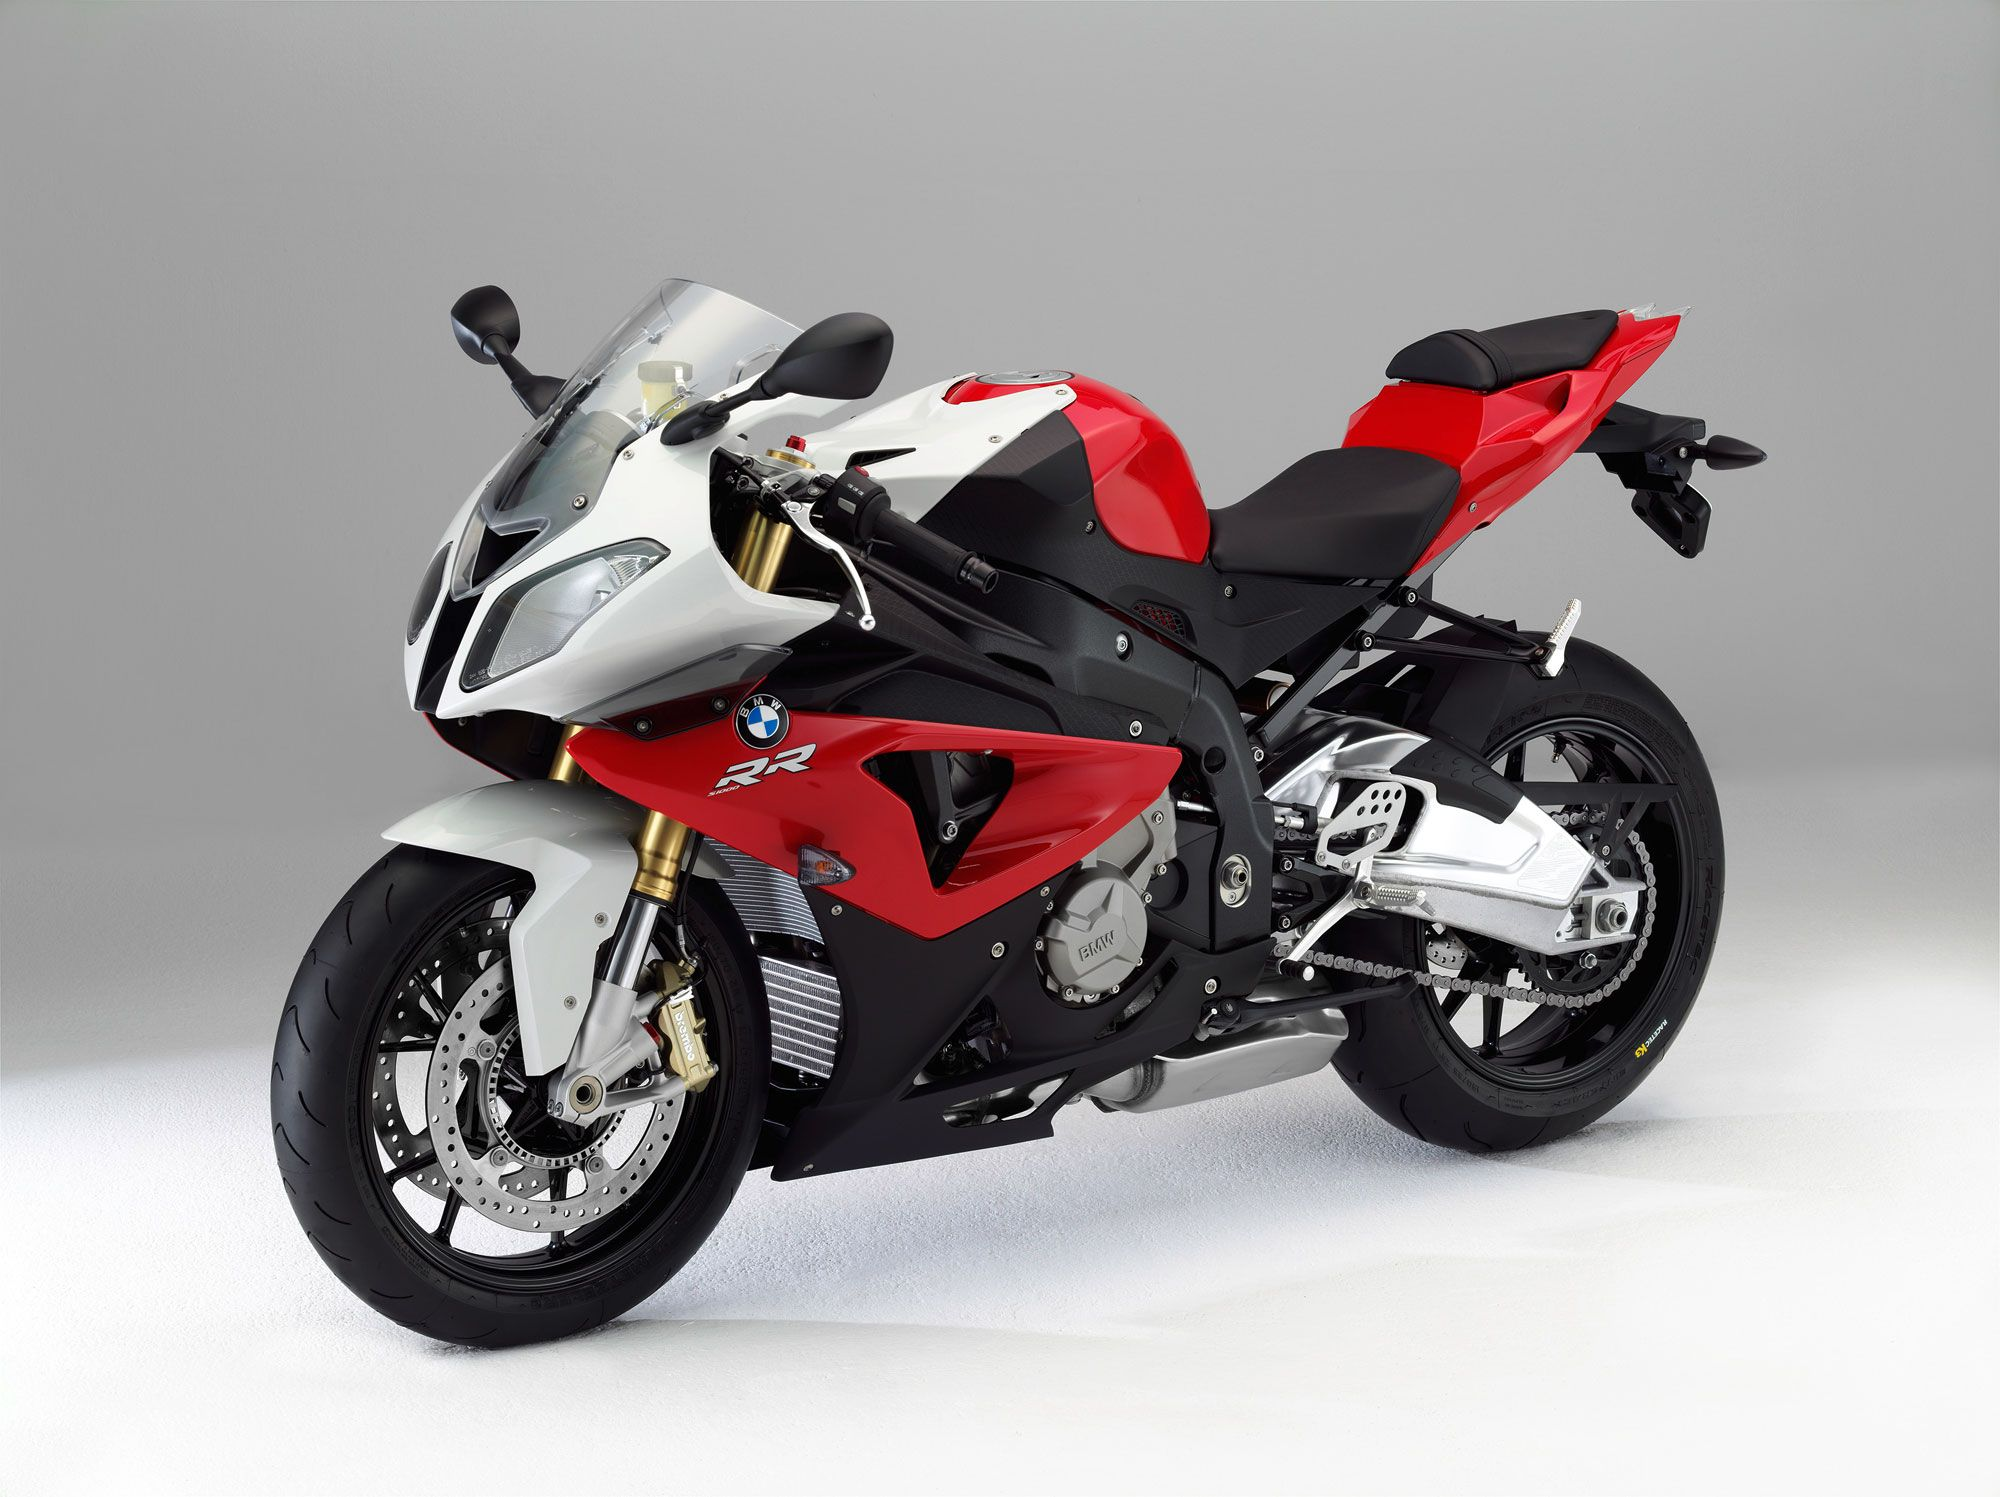 Hd wallpaper and background photos of bmw sport rr for fans of motorcycles images